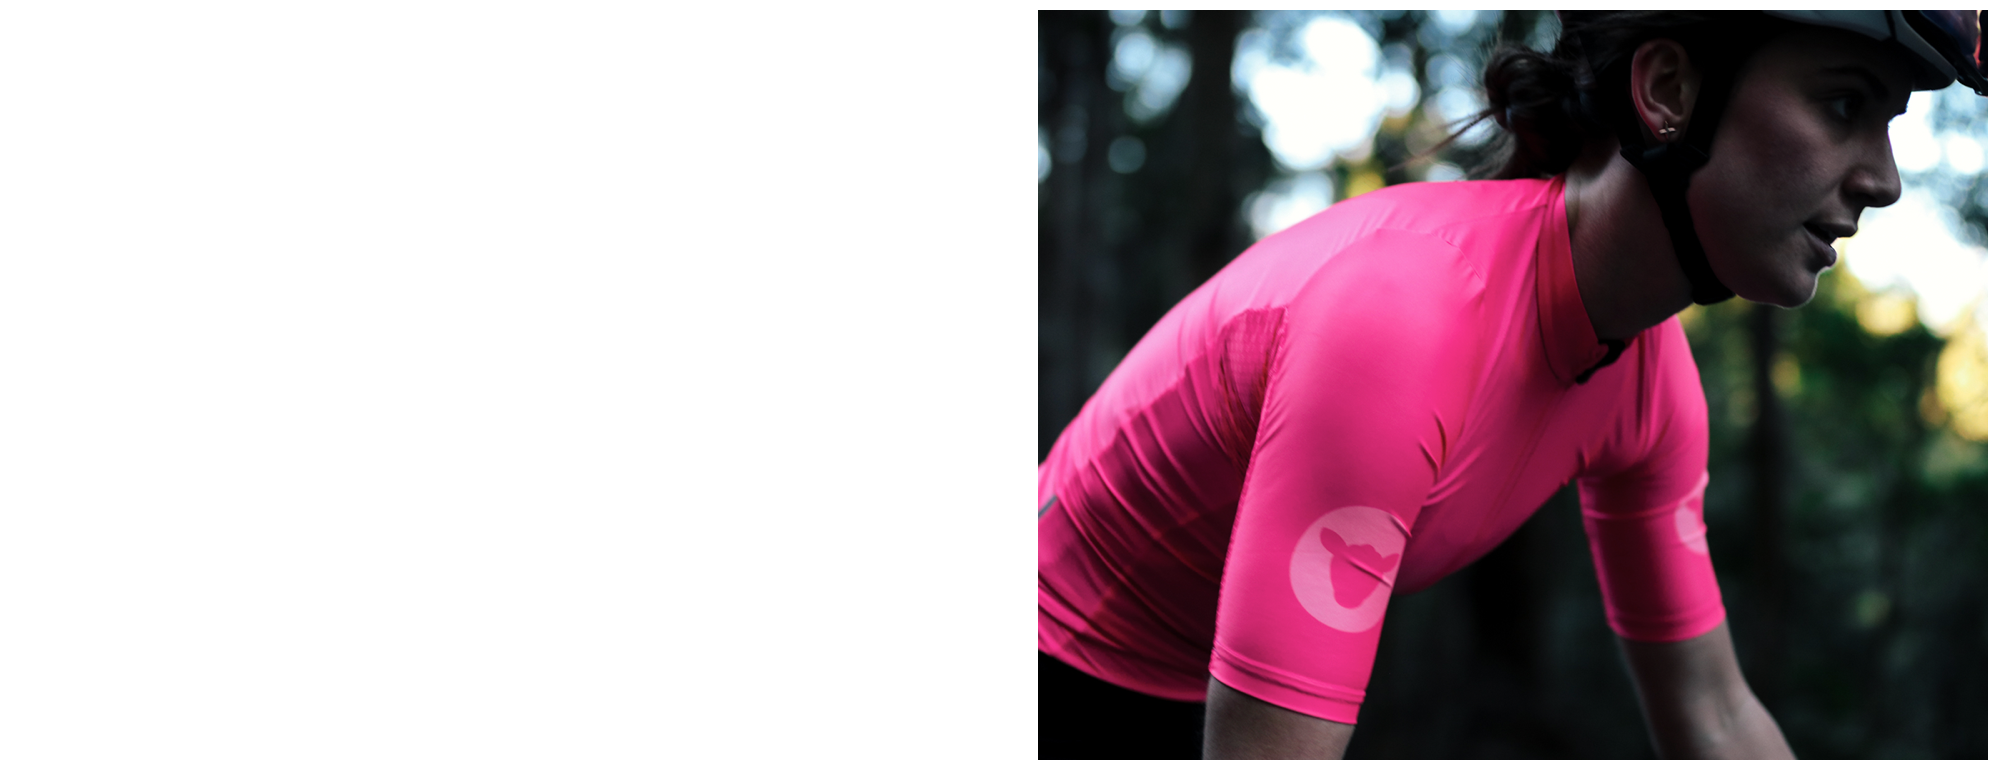 Black Sheep Cycling Team レディースサイクルジャージ - Neon Pink  | CYCLISM